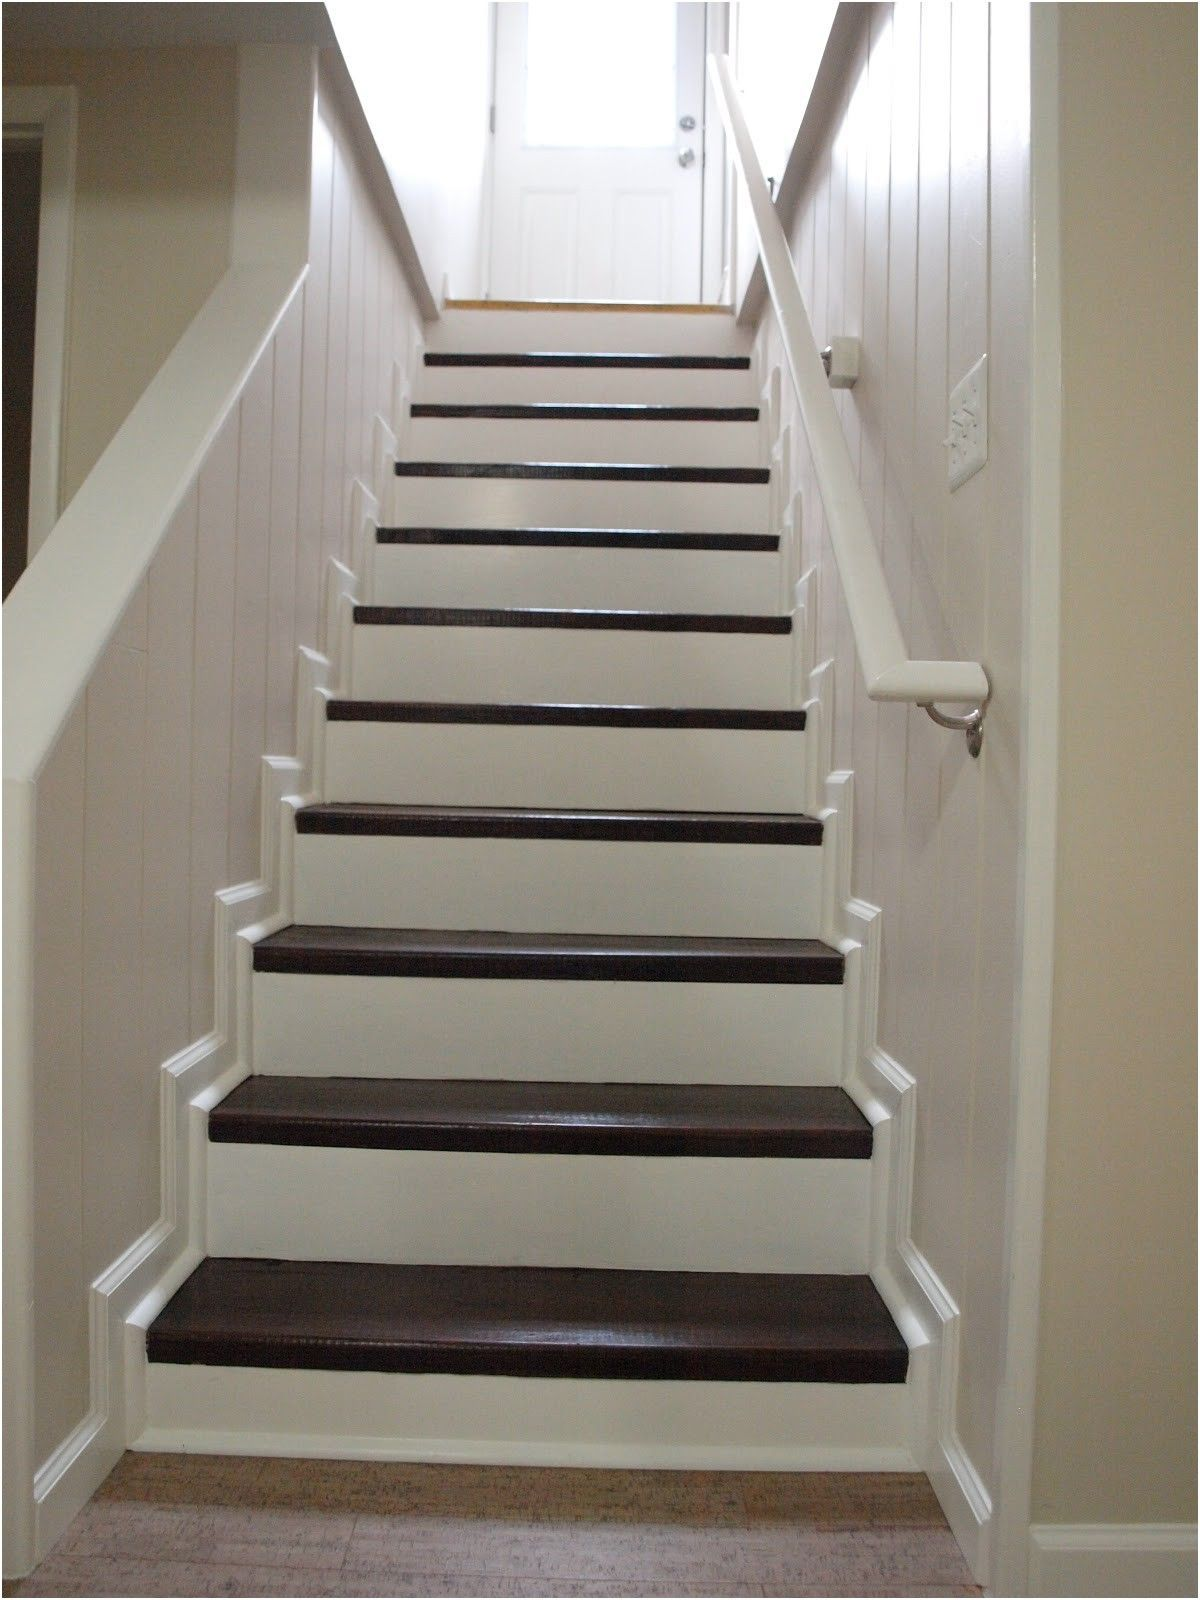 finish basement stairs home design ideas from how to finish basement rh pinterest co uk steps to finishing a basement steps to finishing a basement video